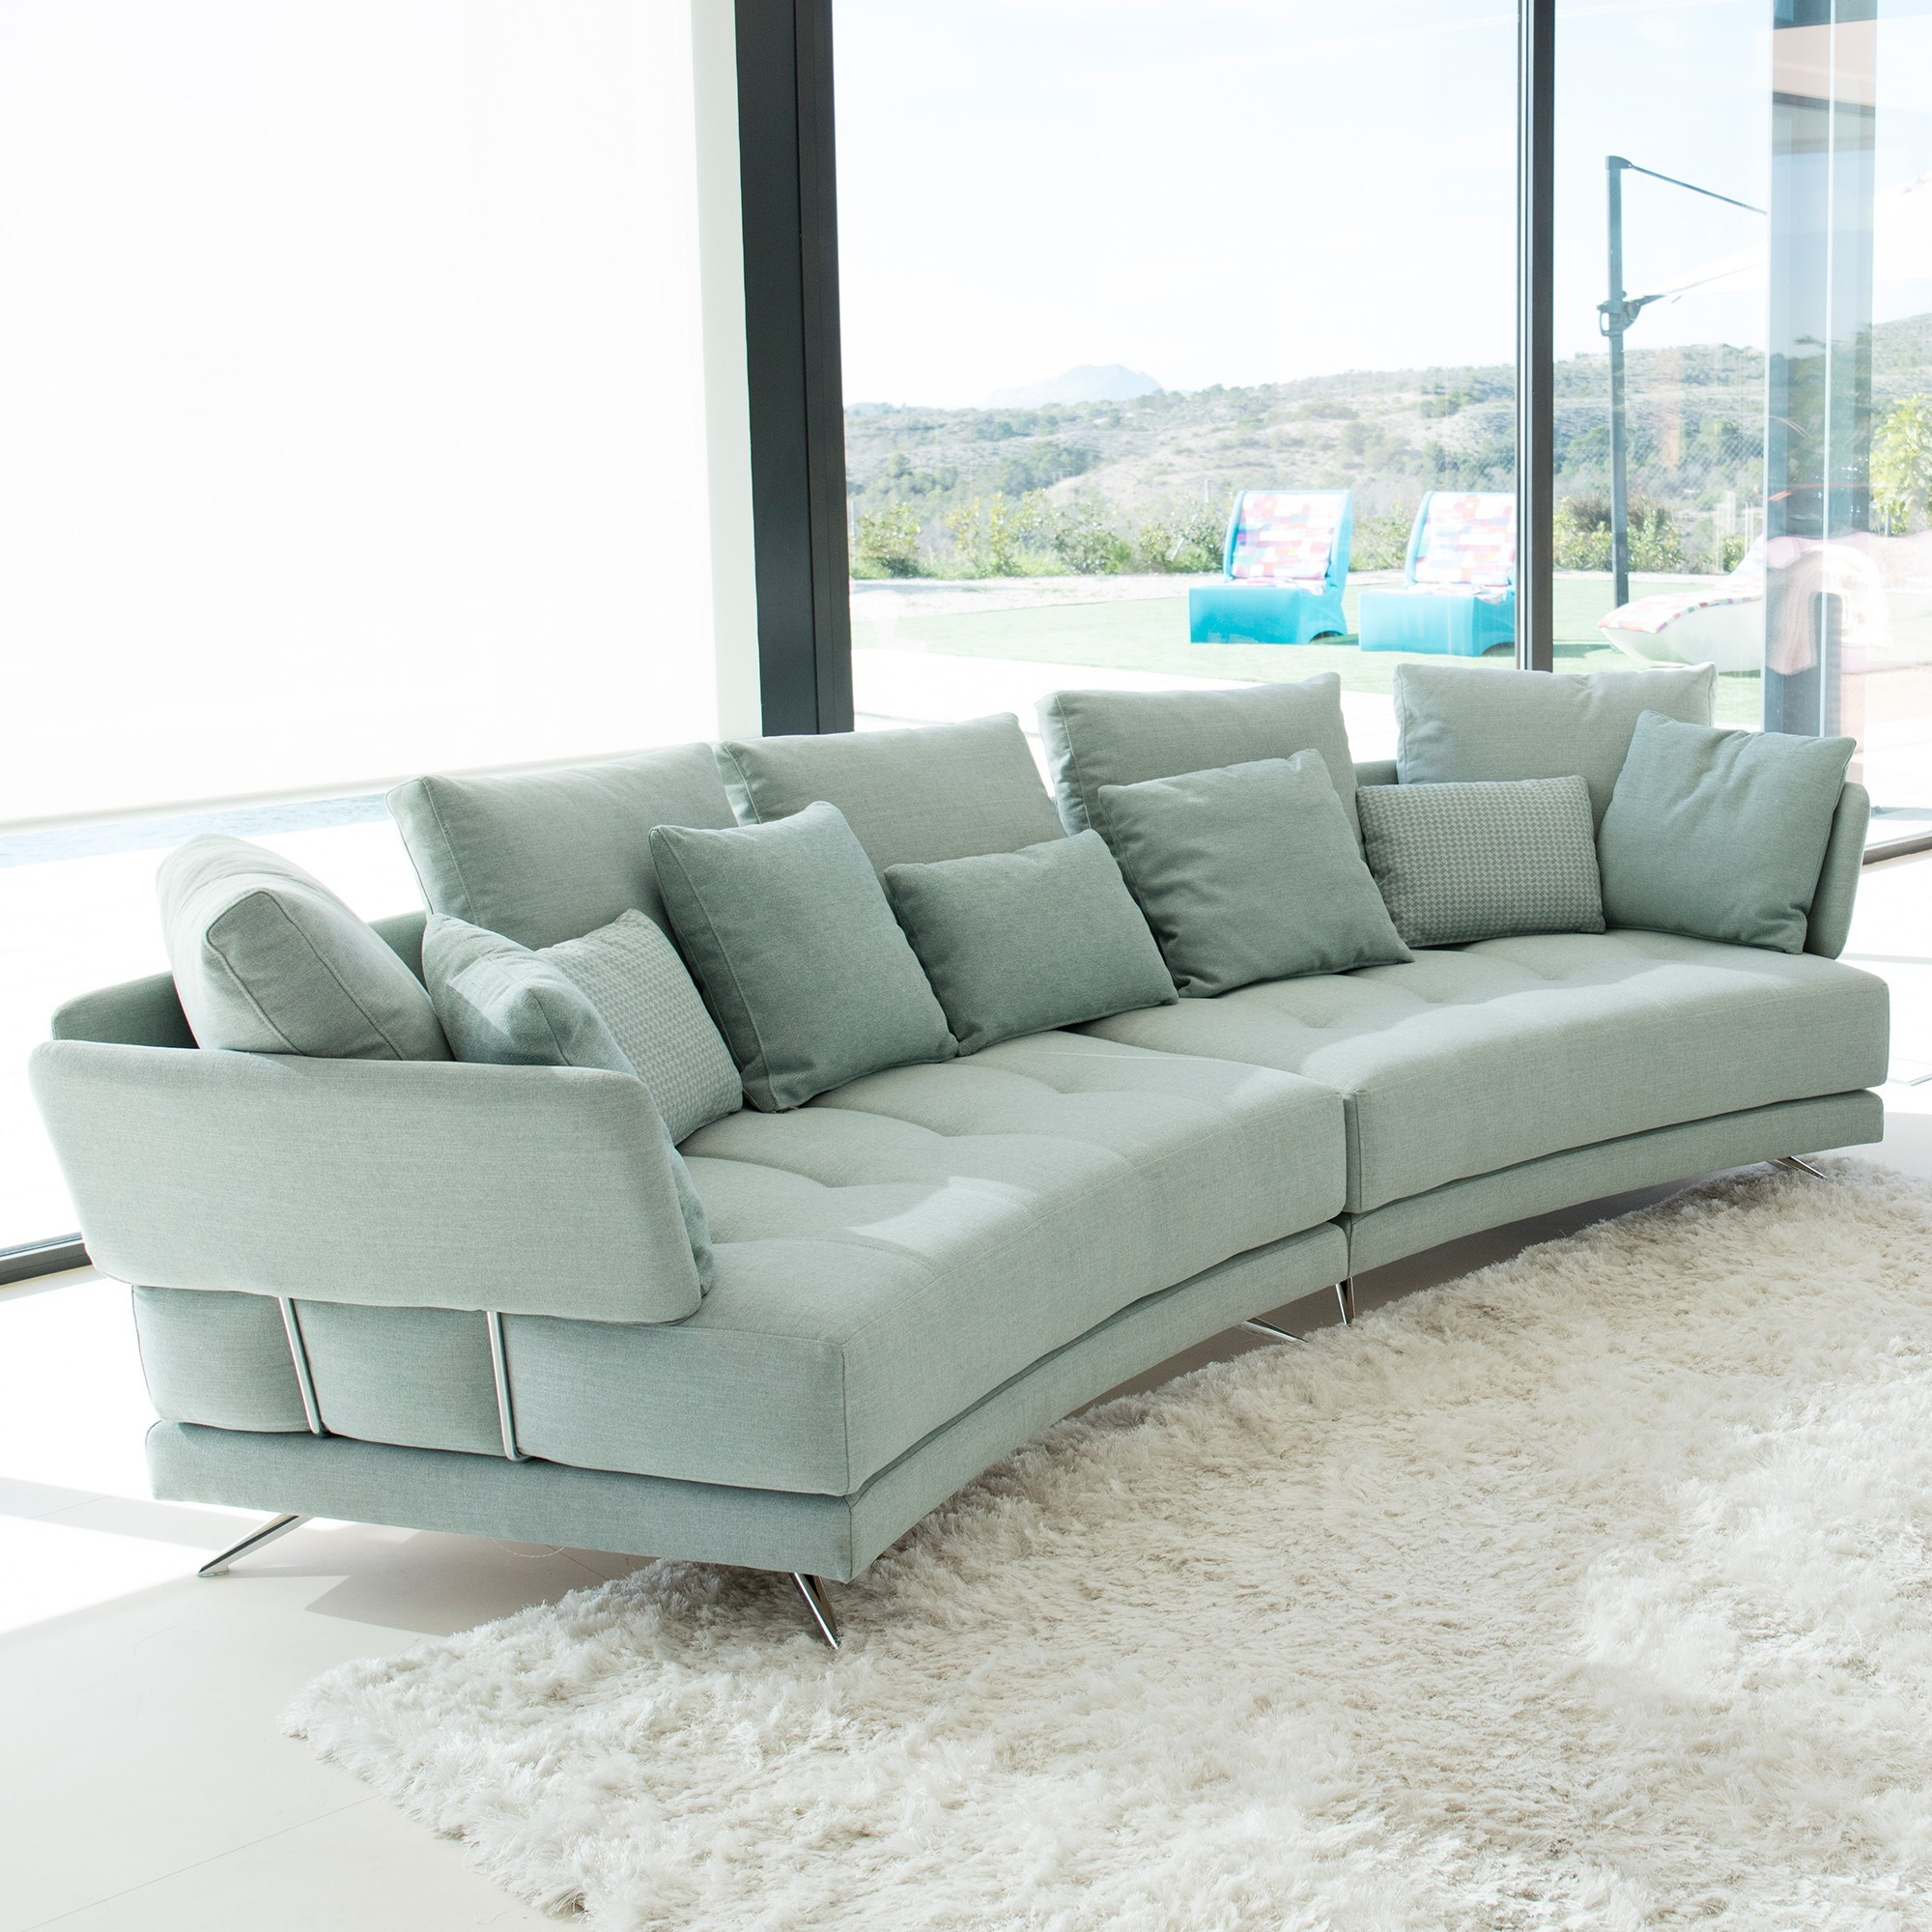 Curved sofa uk - Sofas contemporaneos ...